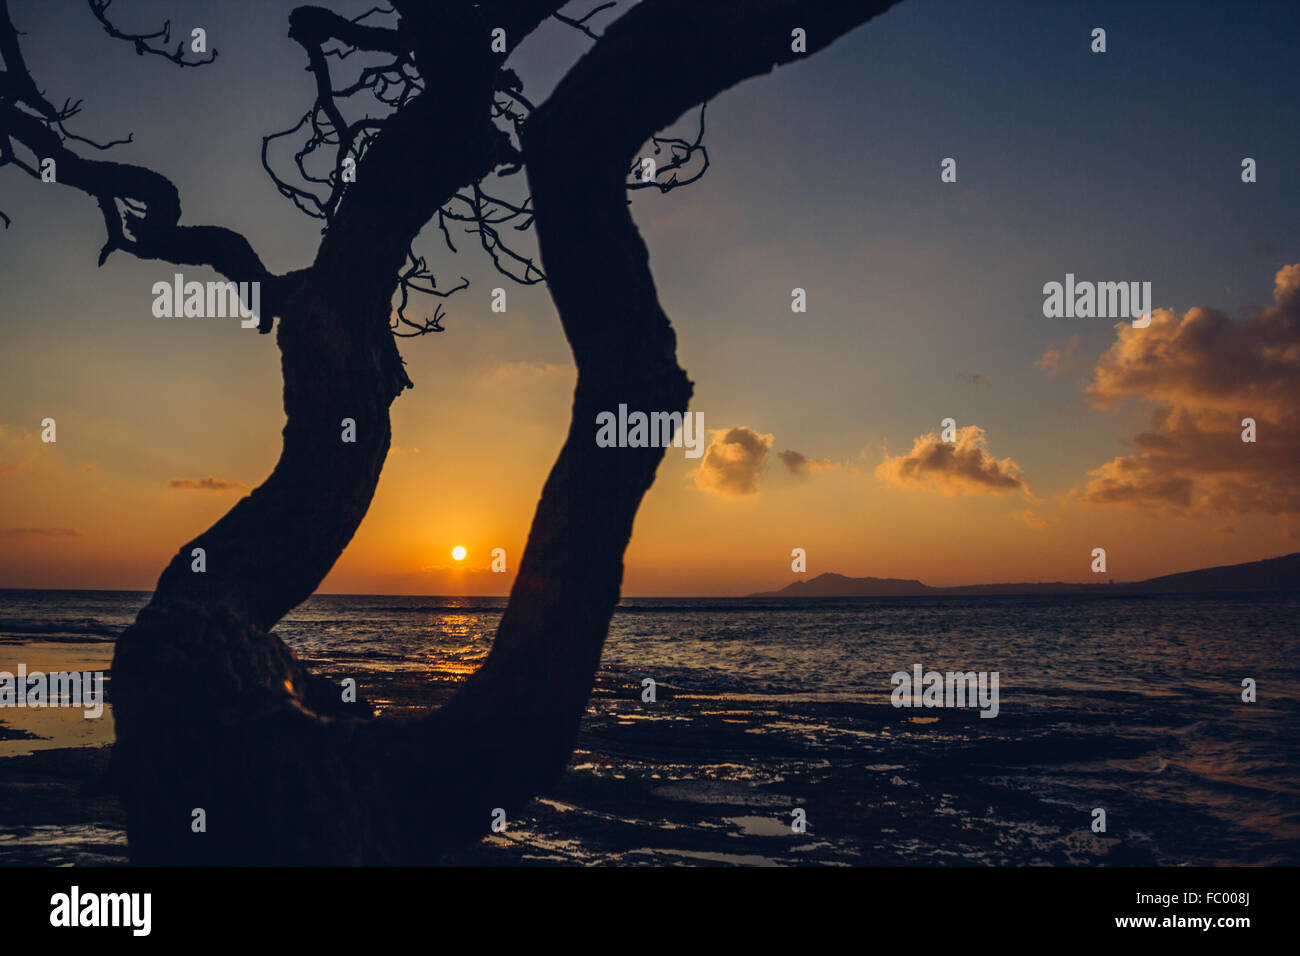 Tree silhouette at Portlock, sunset on Oahu, Hawaii, USA with horizontal composition. - Stock Image